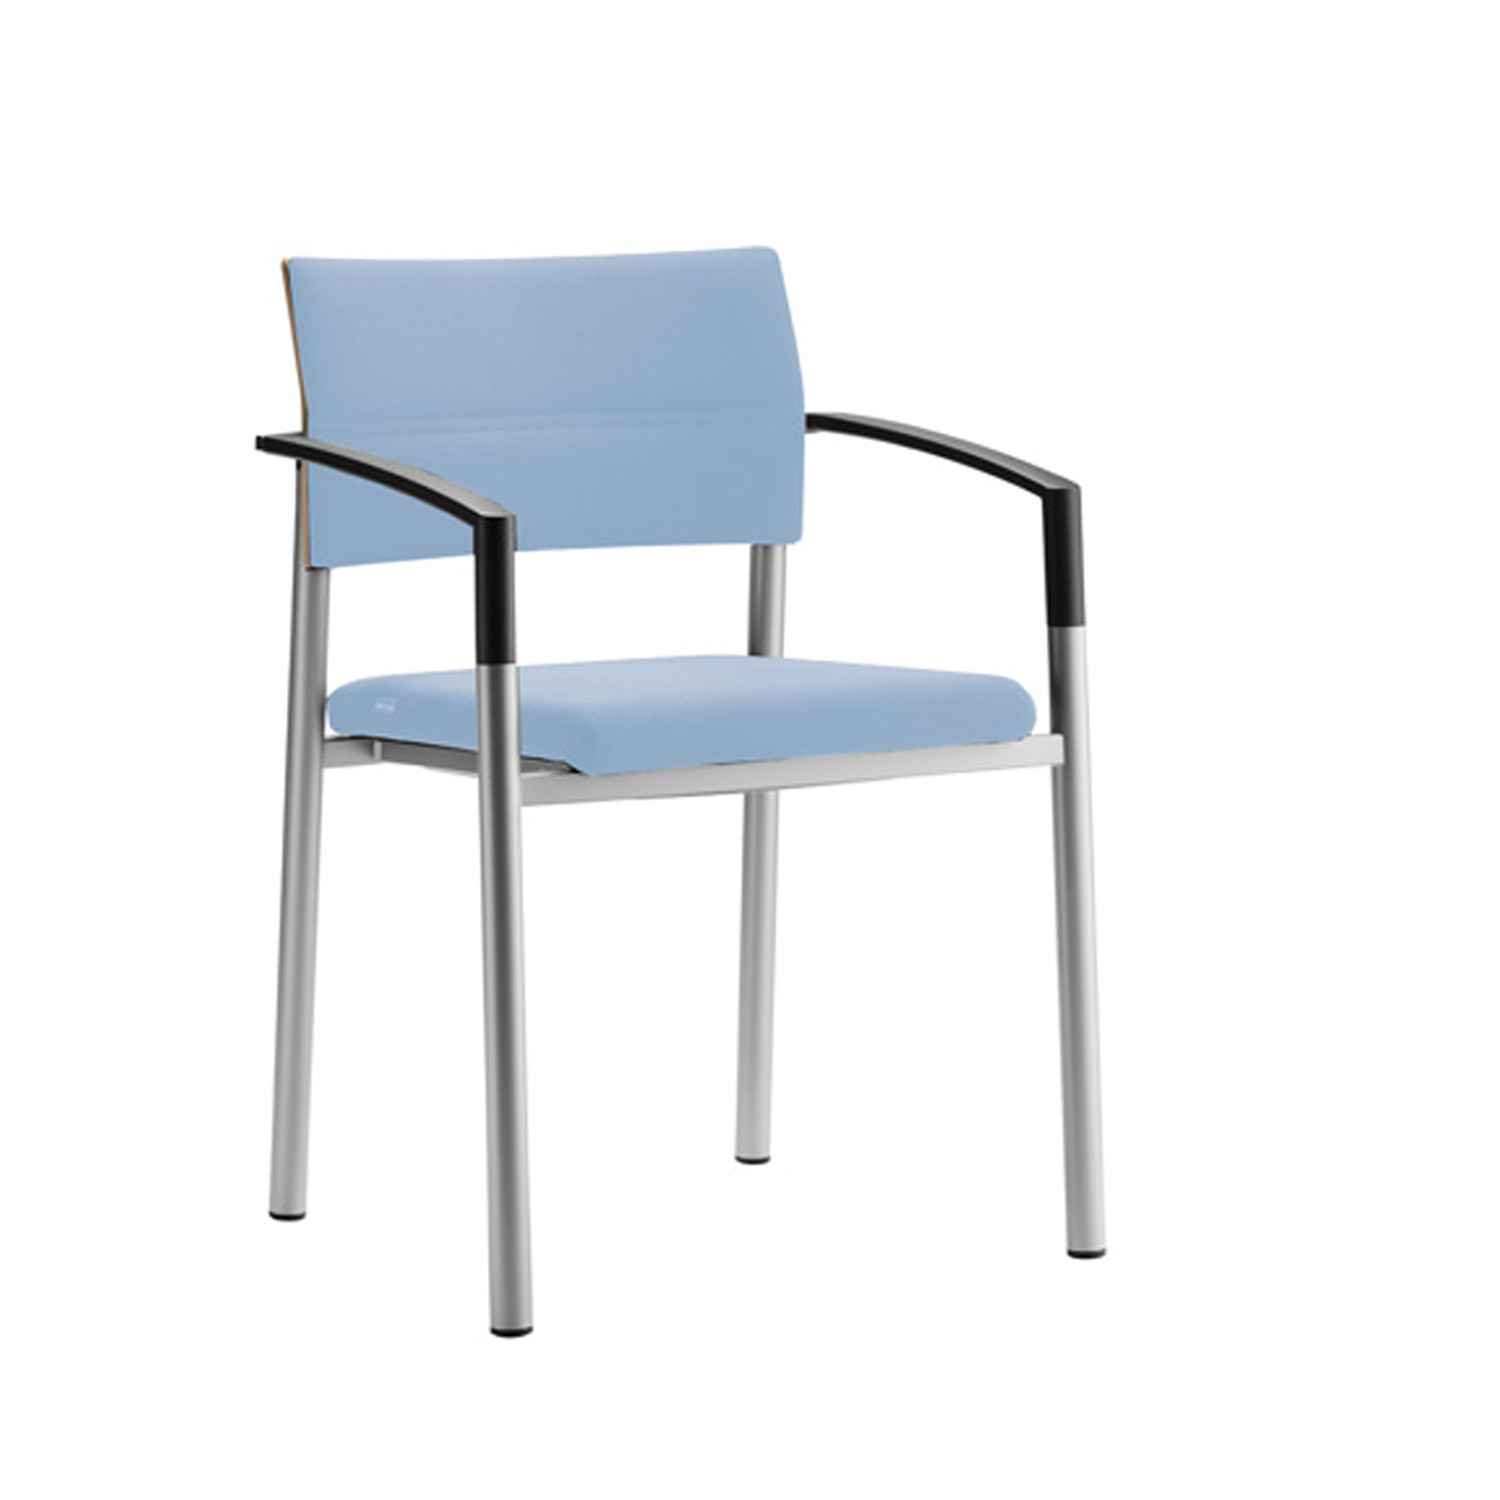 Aluform_3 Chair by Arge2